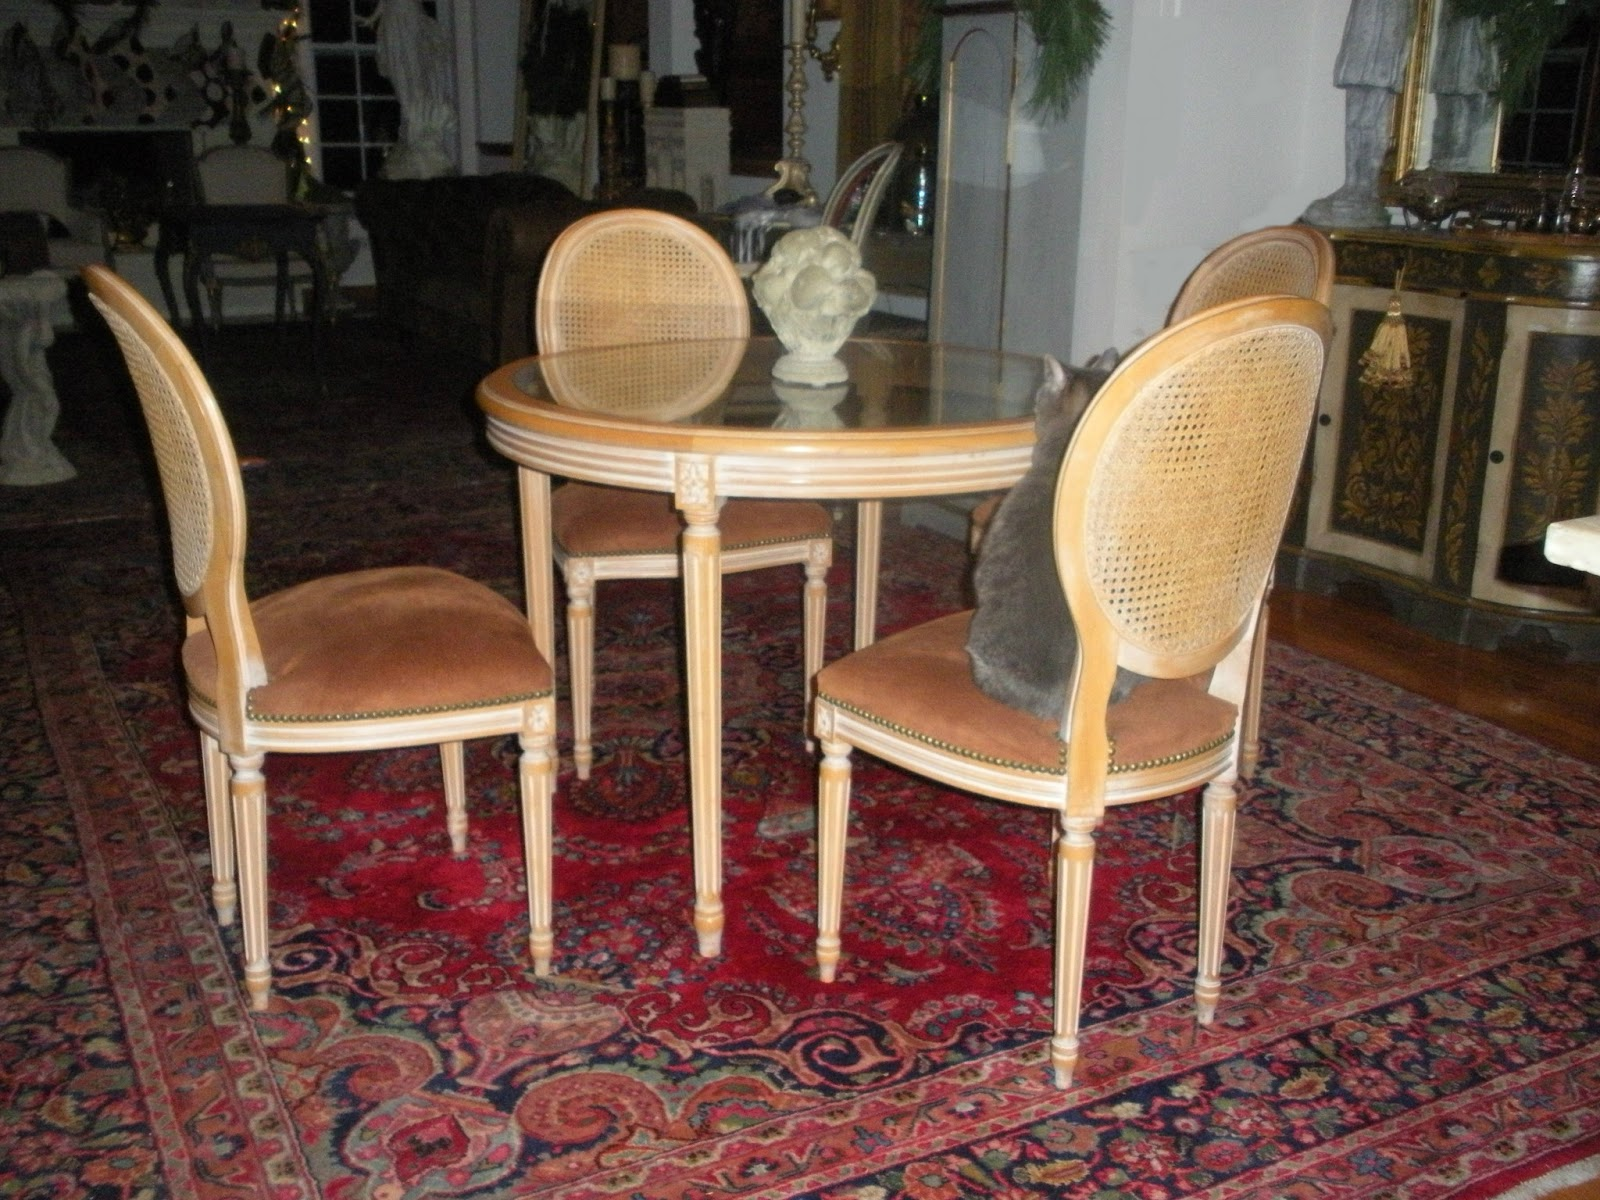 Dining room chairs craigslist